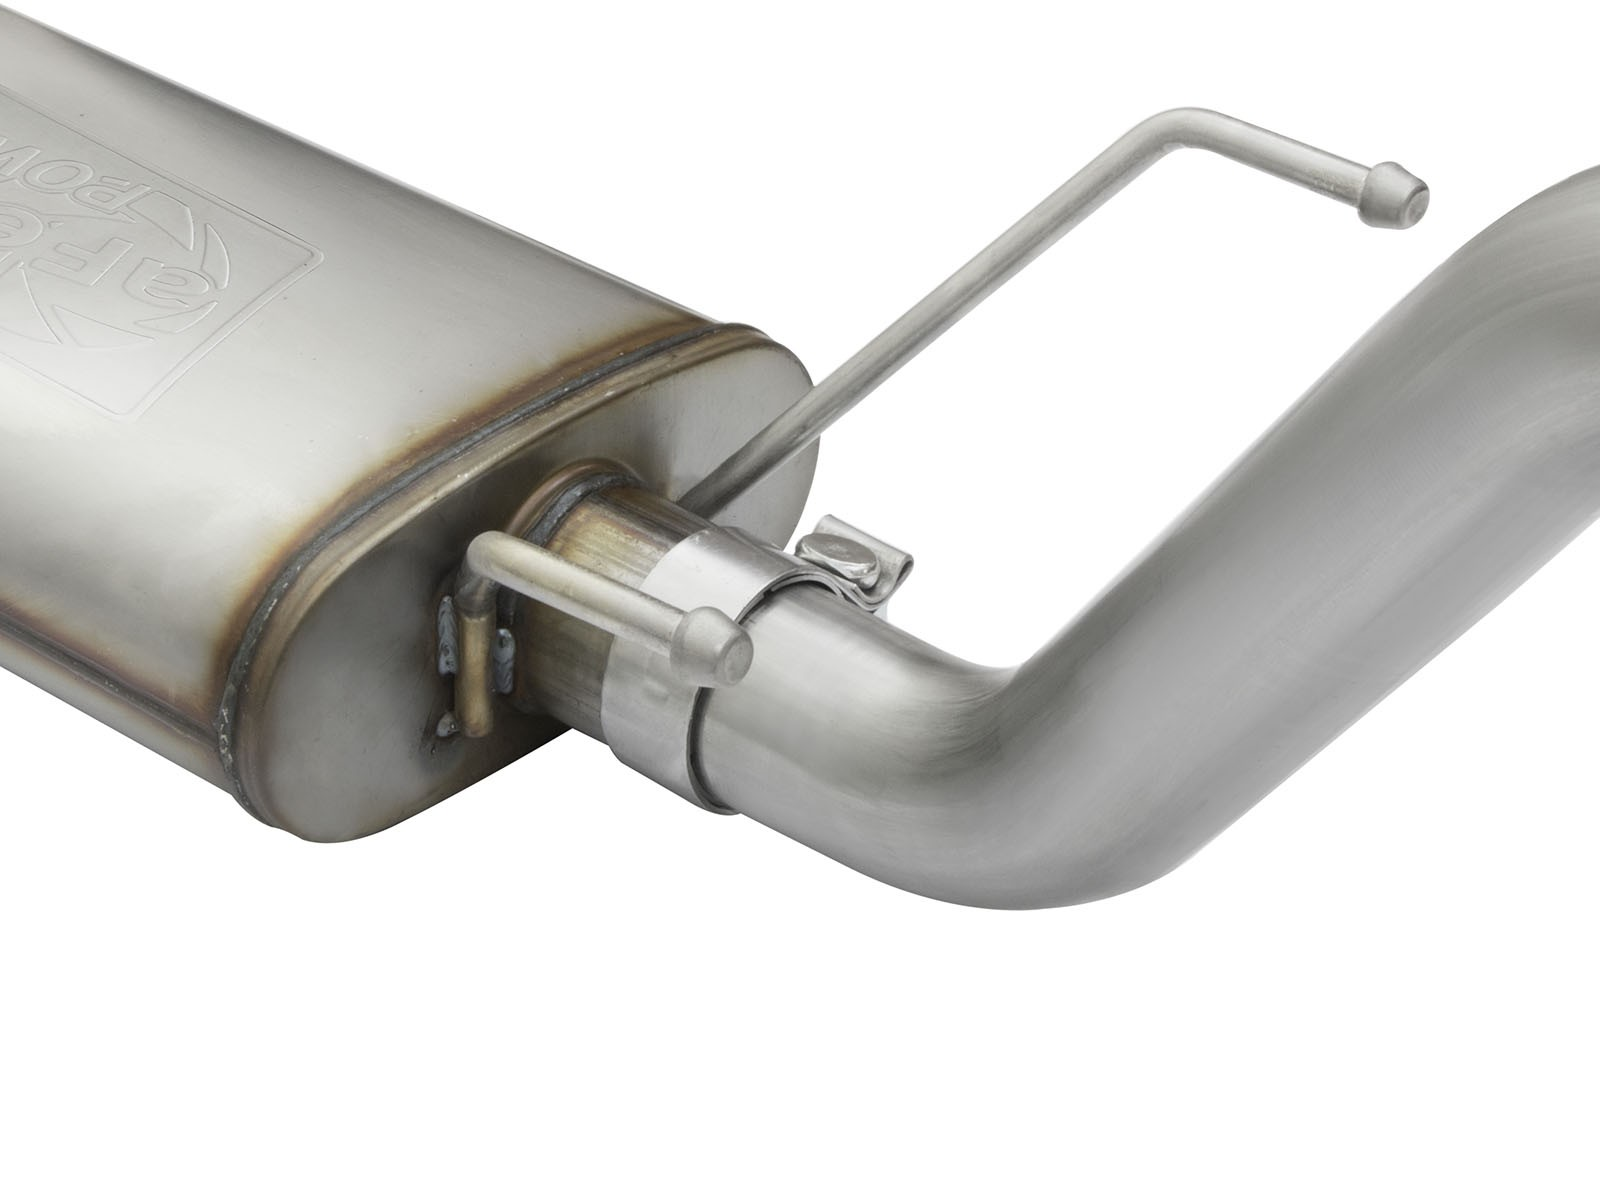 aFe POWER MACH Force-Xp Cat-Back Exhaust System POLISHED TIP Toyota Tacoma 05-12 L4-2.7L CC/SB EC/LB & CC/LB